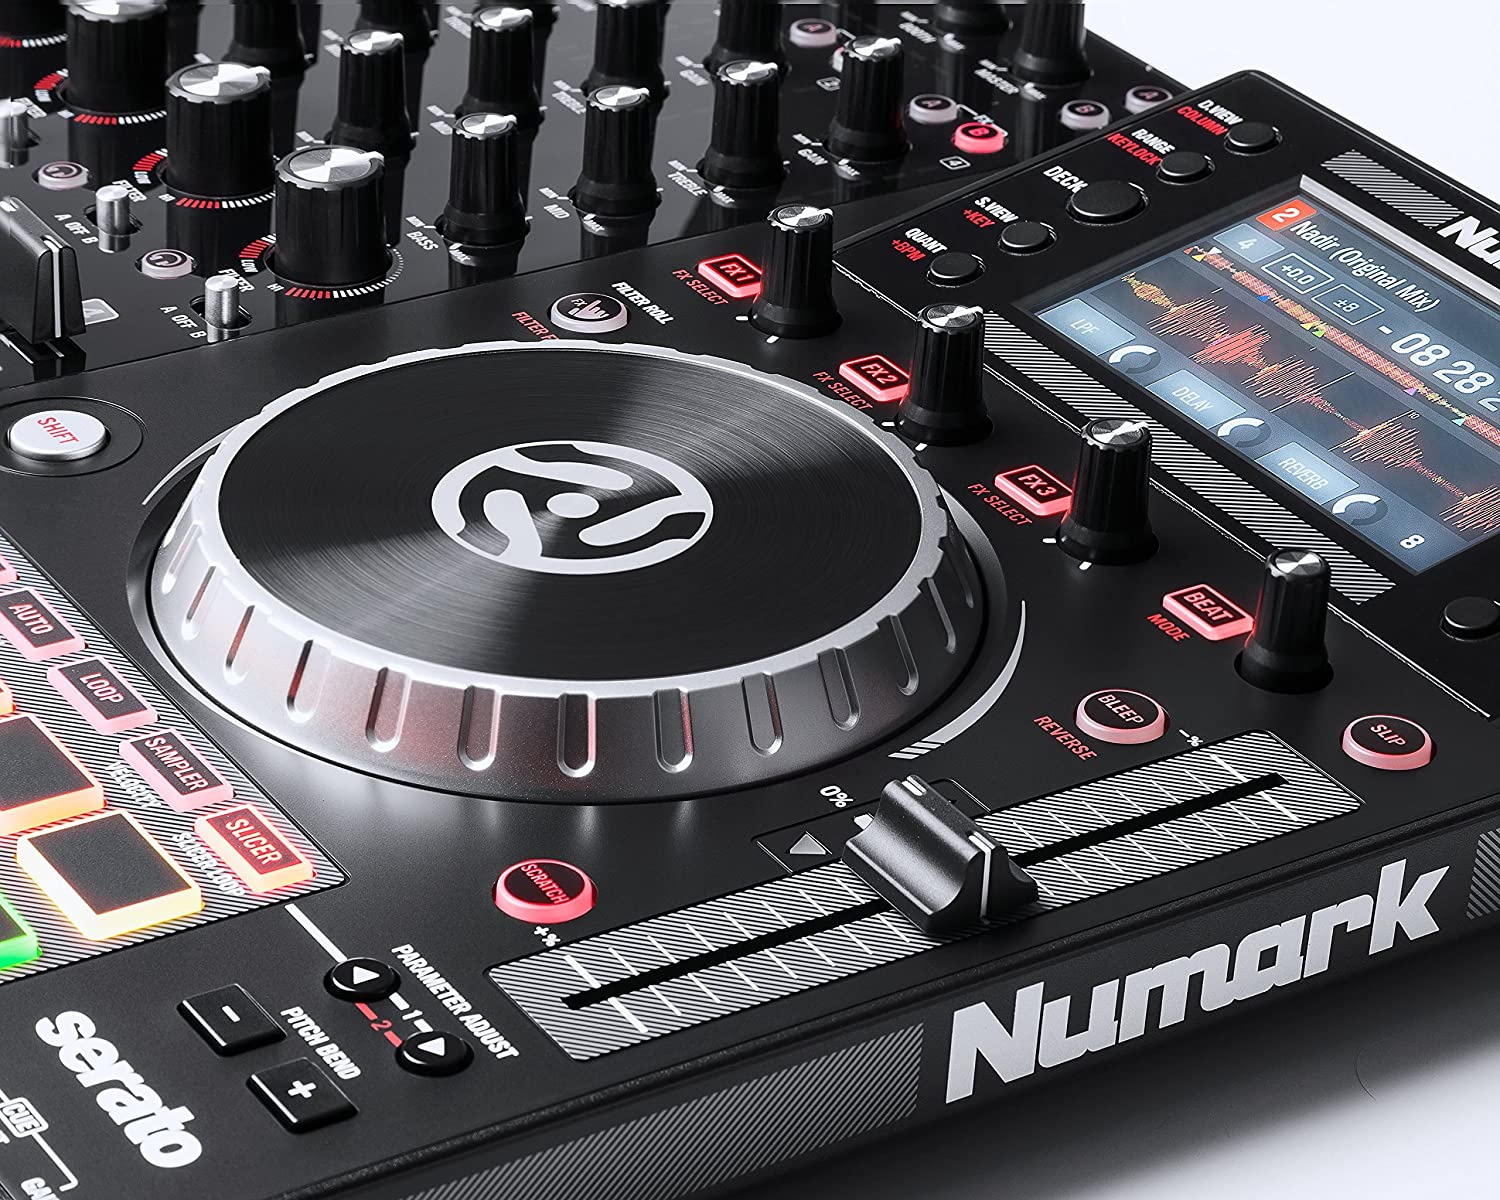 Numark Nvii Dj Controller For Serato With Mixtrack Pro Wiring Diagram Intelligent Dual Display Screens Touch Capacitive Knobs Musical Instruments